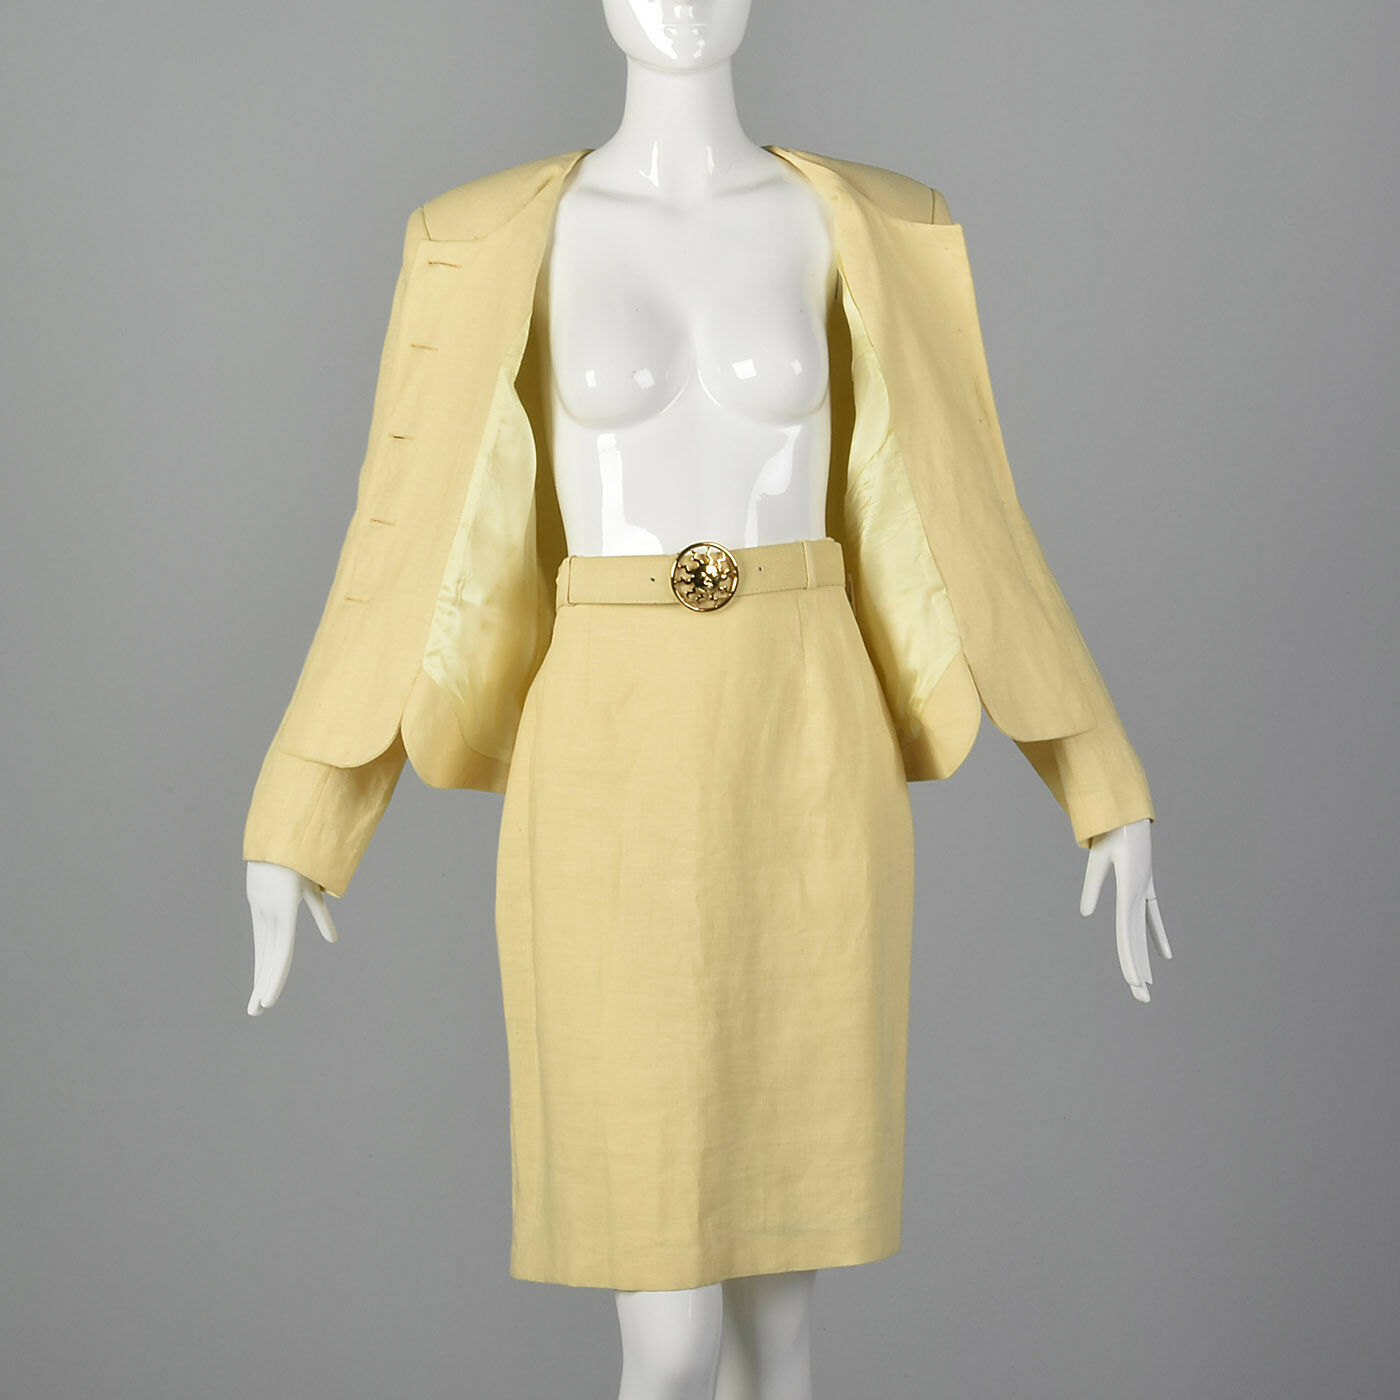 M 1990s Moschino Cheap & Chic Yellow Linen Suit S… - image 4